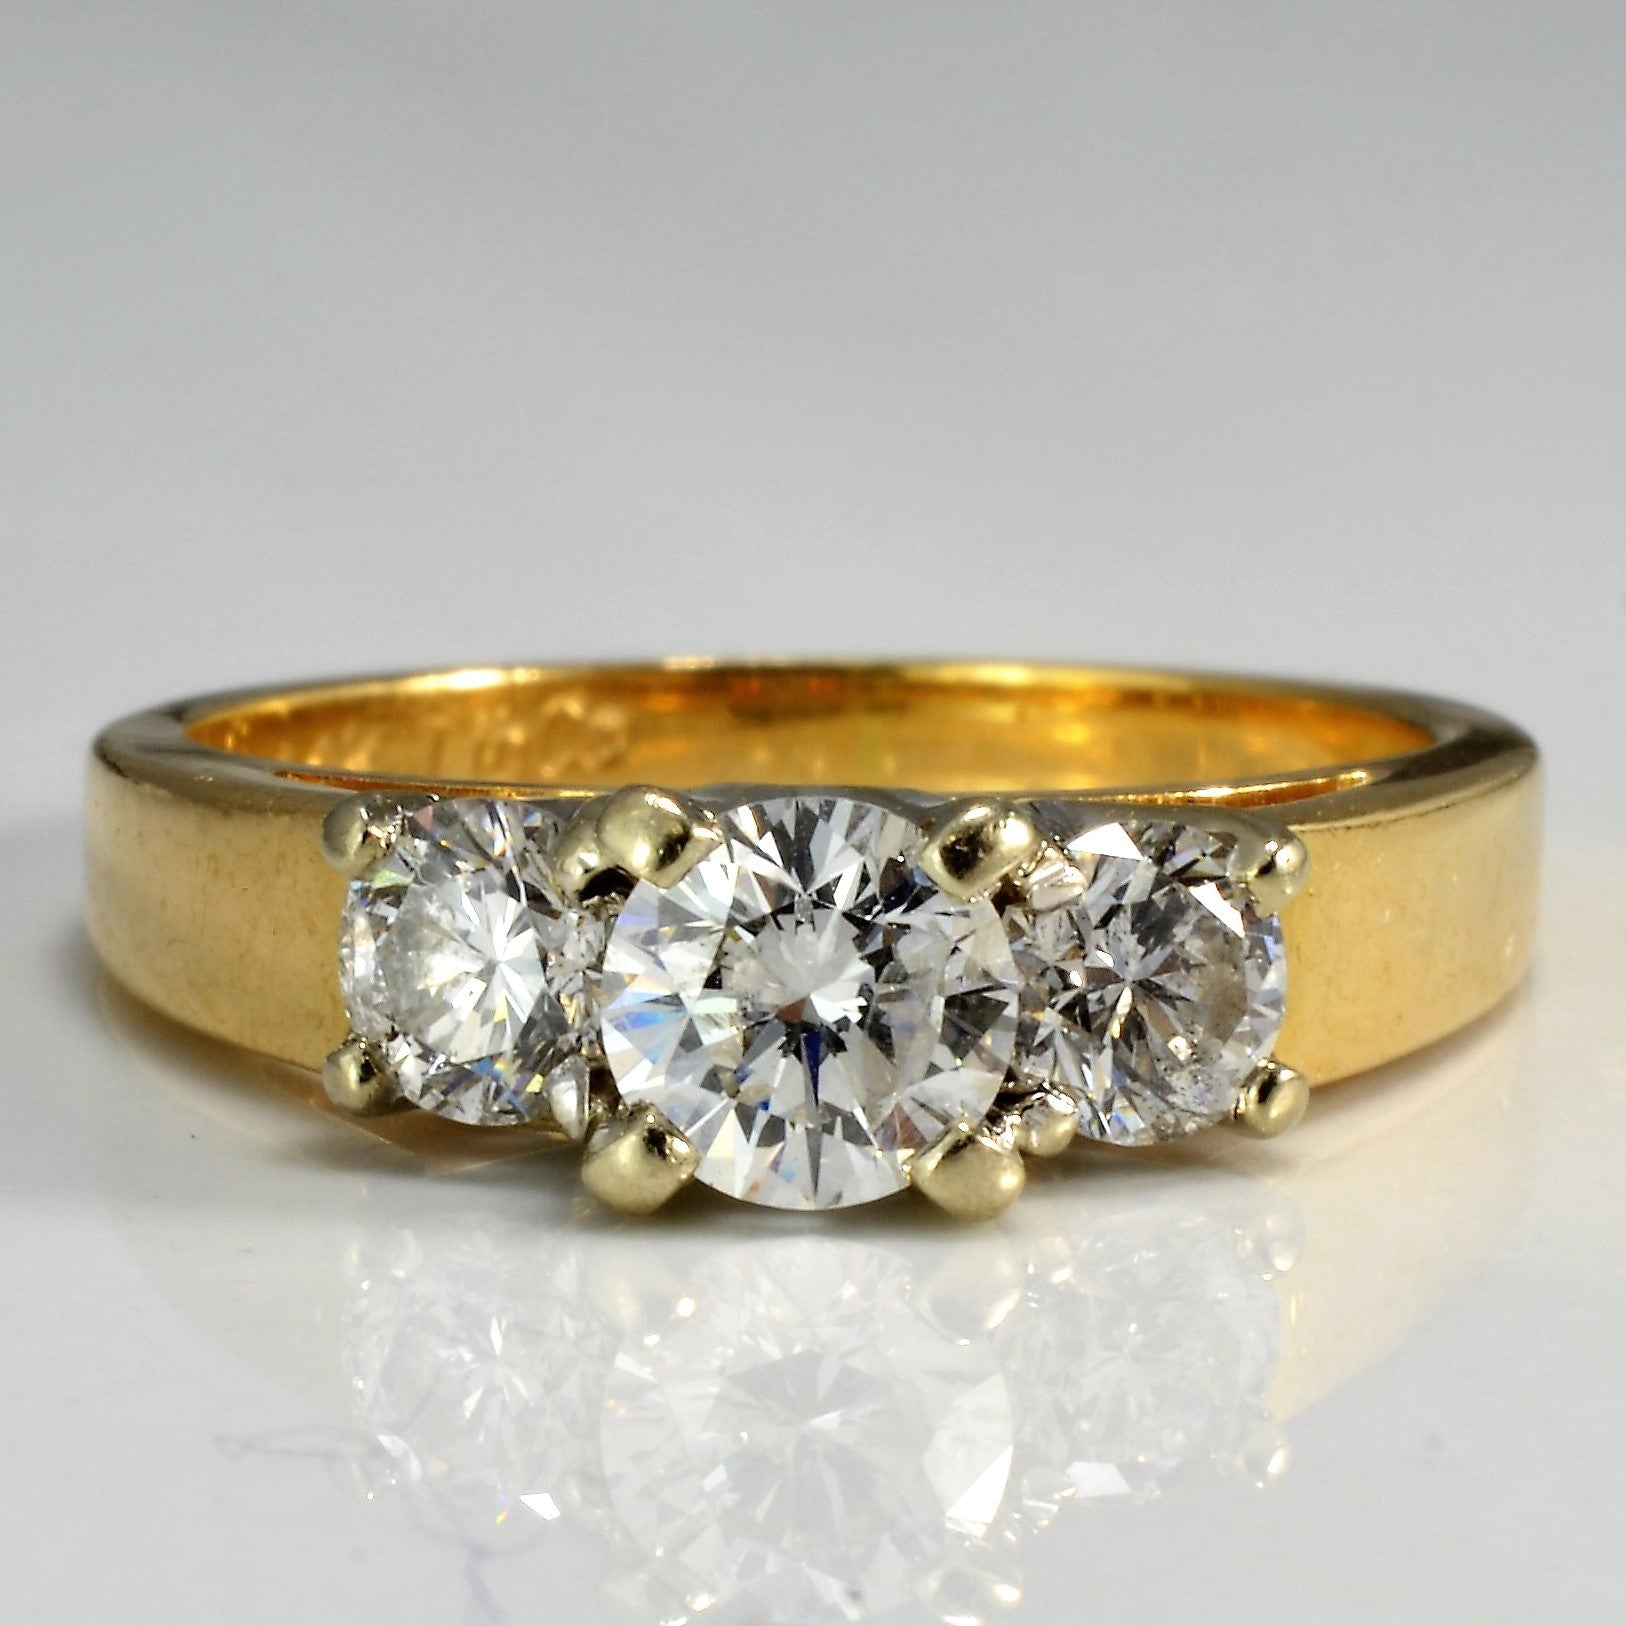 ben stone product diamond qitok jewellers image msoqpqvtqj three white pagespeed of moss gold ring ic